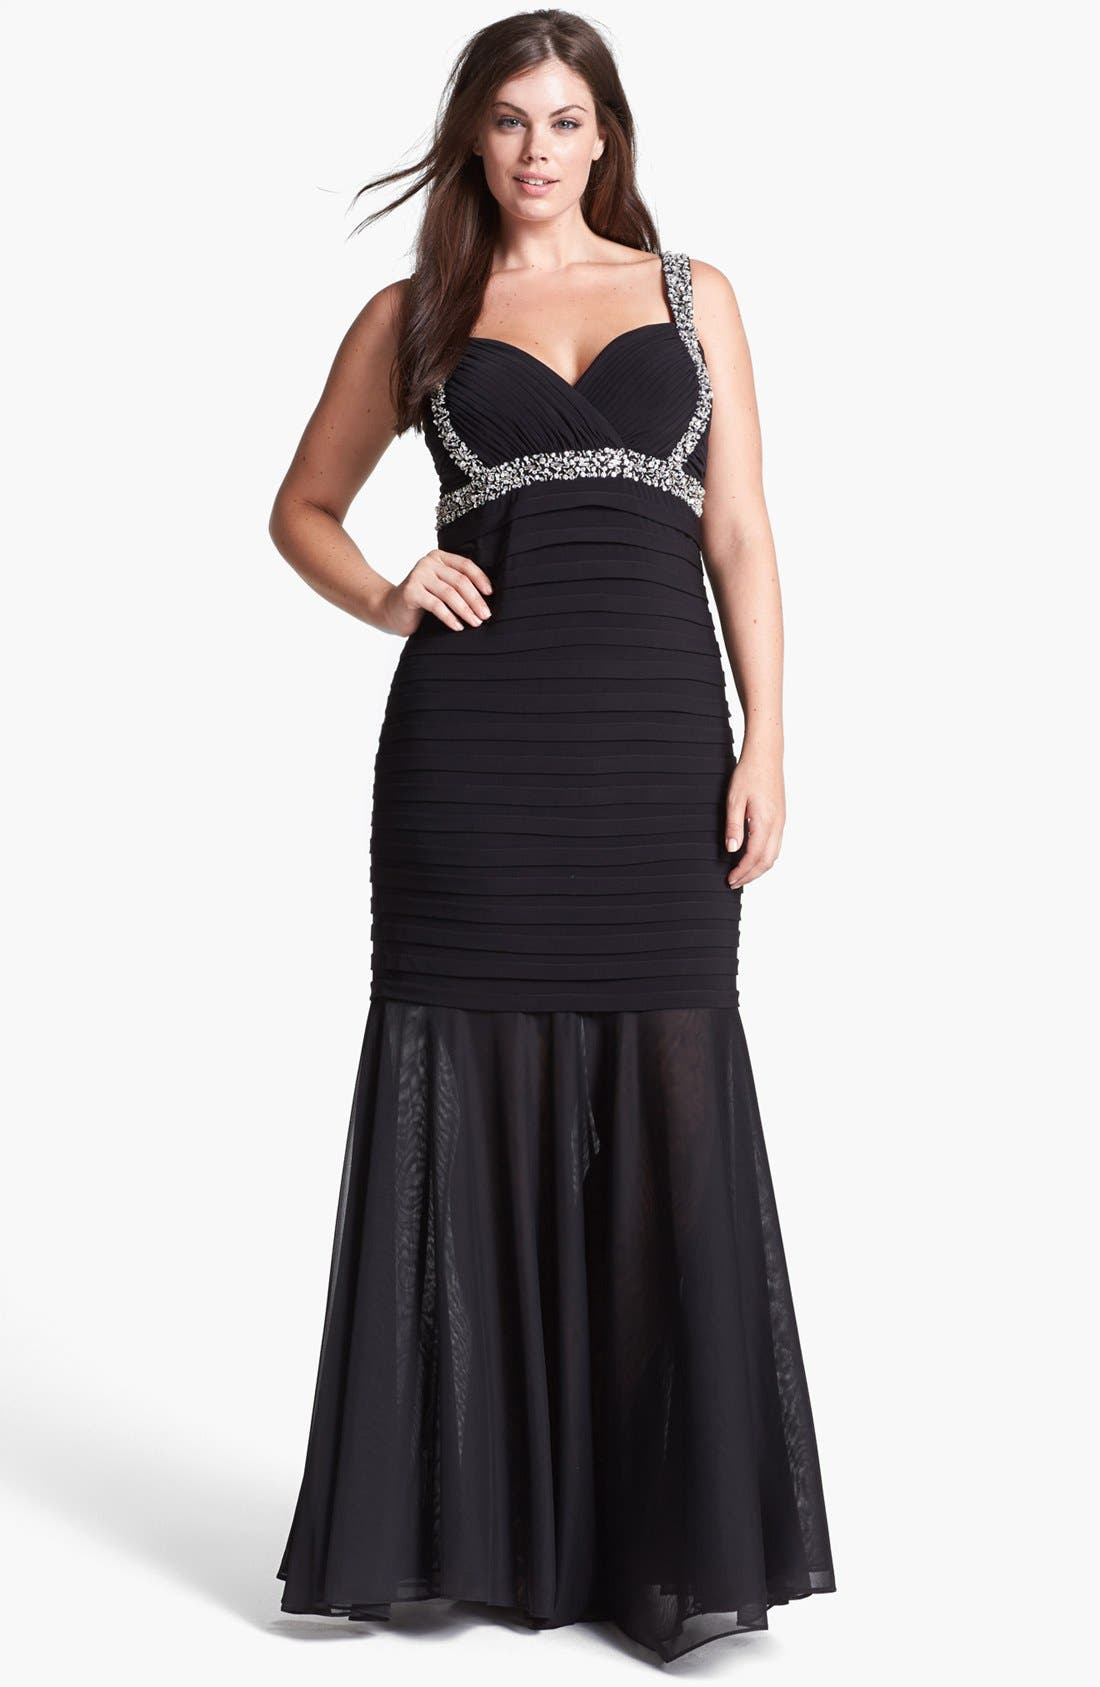 Alternate Image 1 Selected - Betsy & Adam Embellished Shutter Pleat Mermaid Gown (Plus Size)